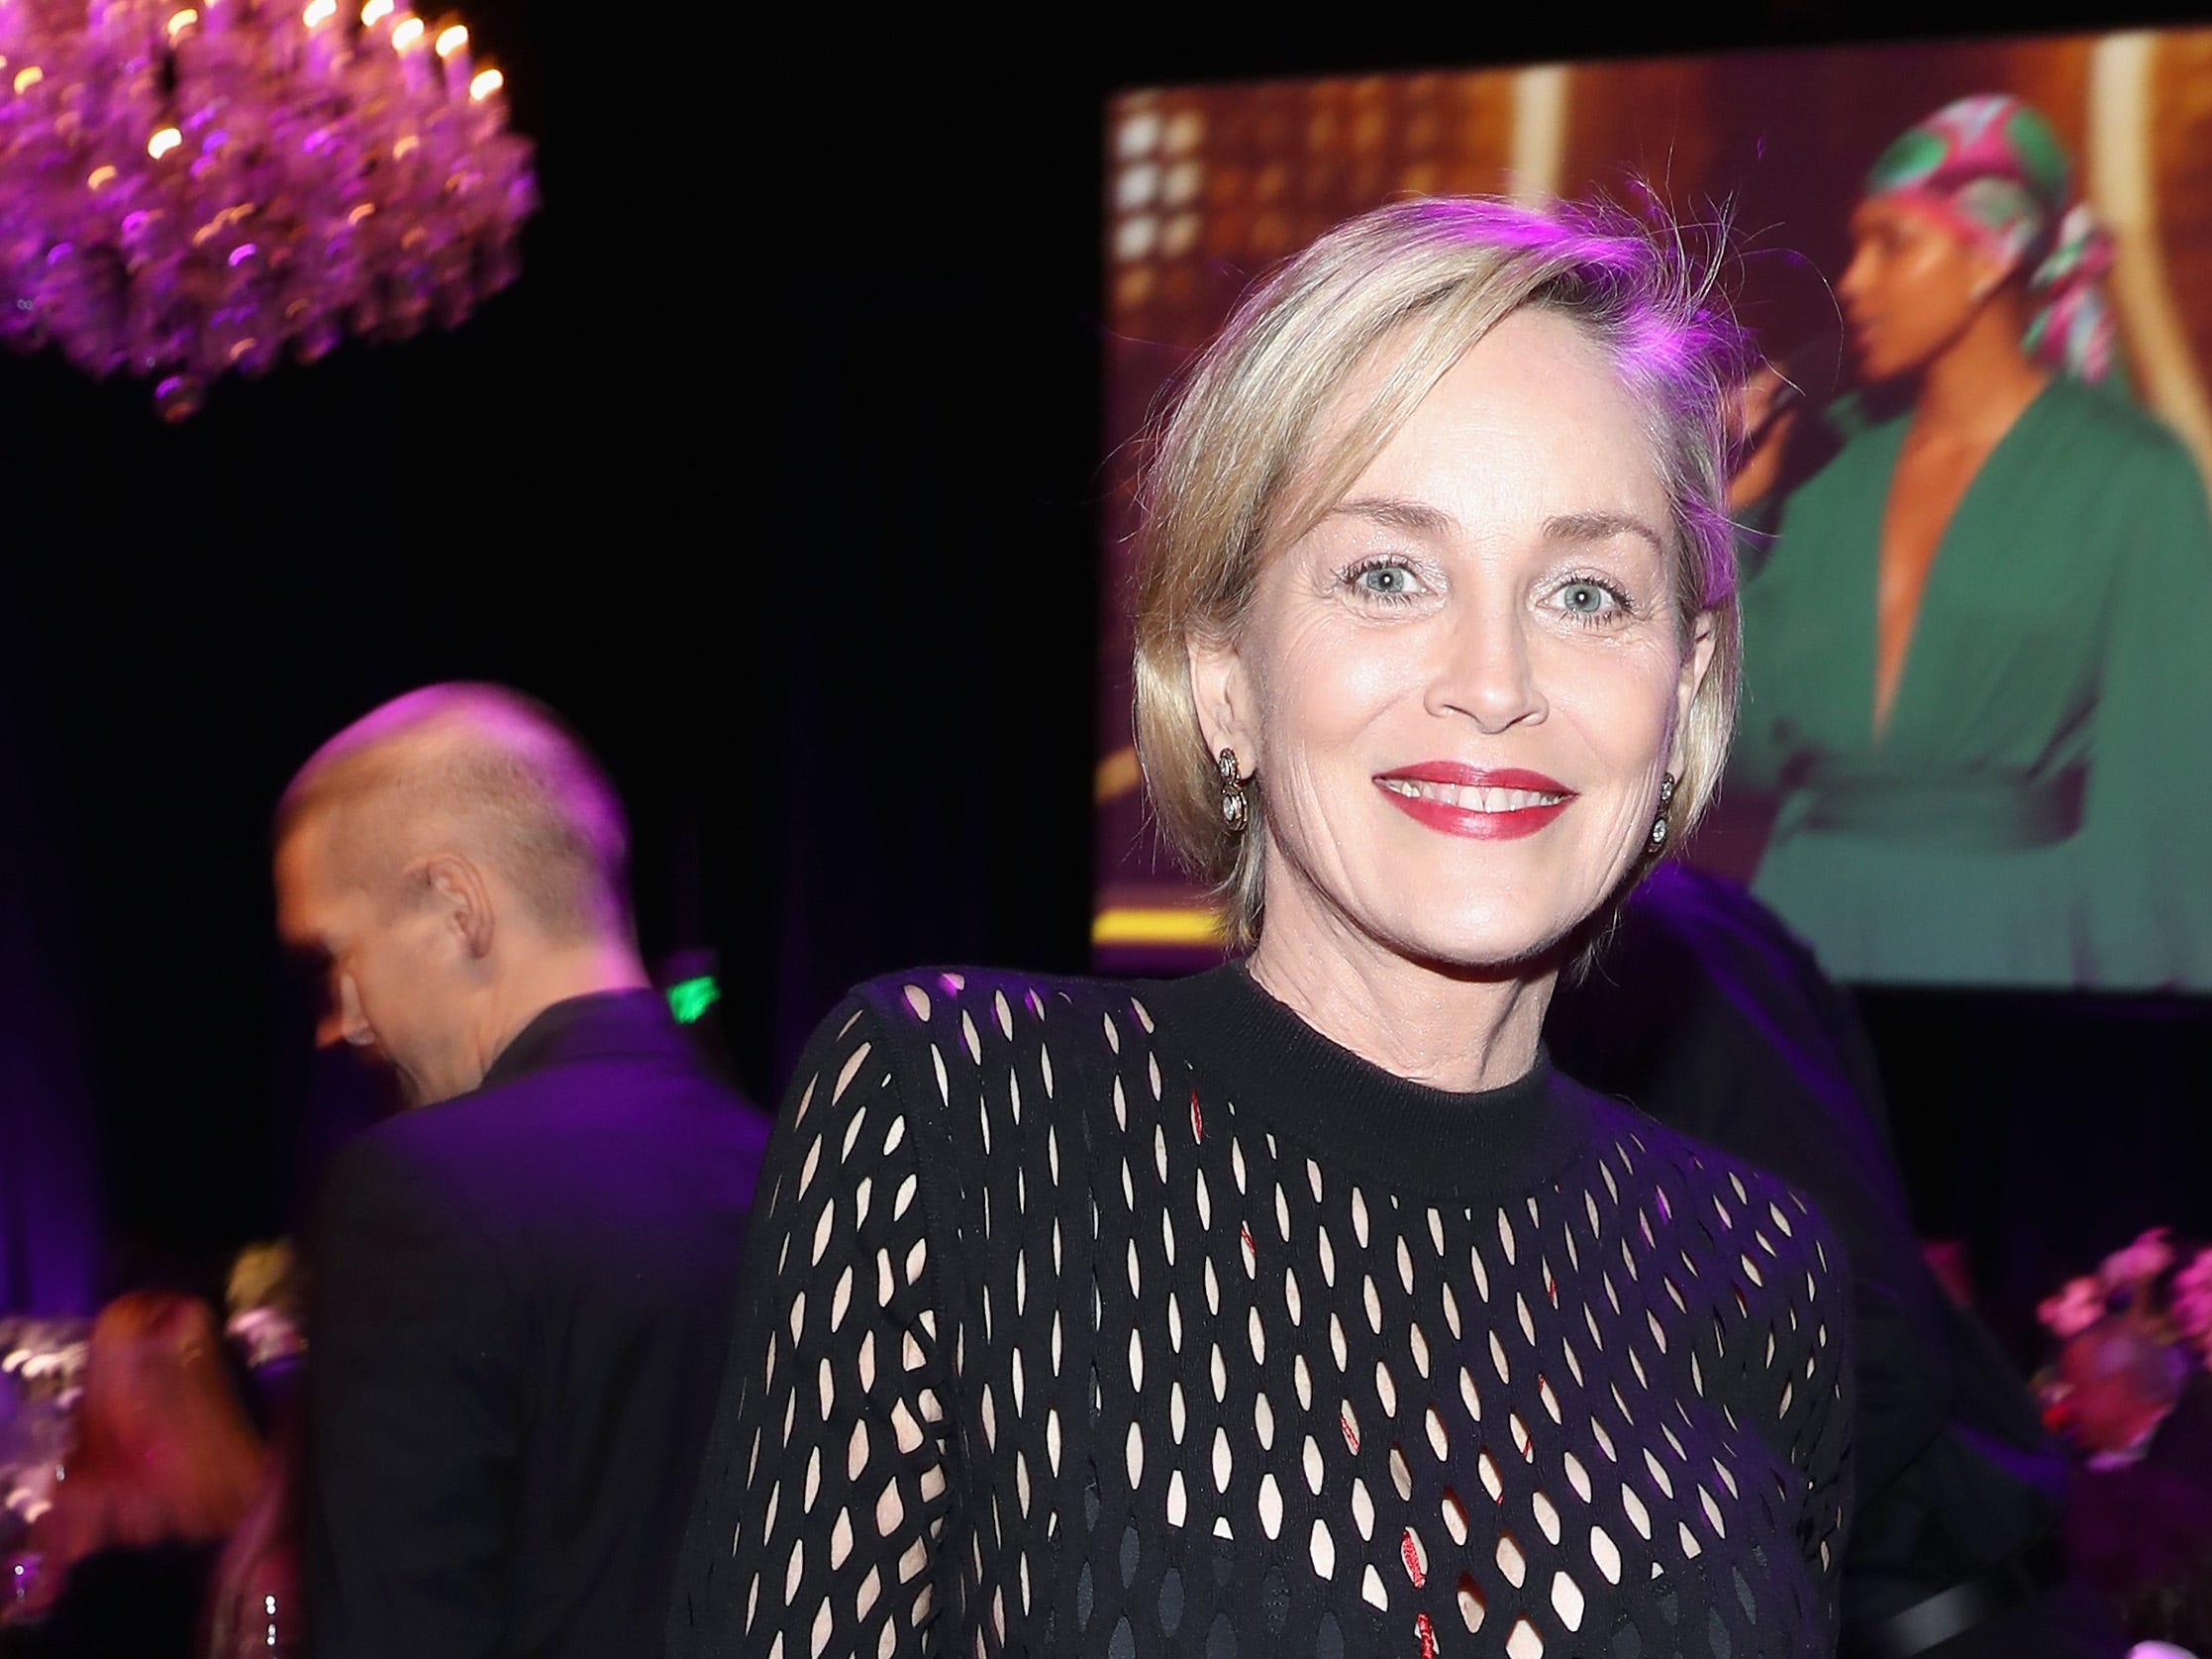 LOS ANGELES, CA - FEBRUARY 10:  Sharon Stone attends Steven Tyler?s Second Annual GRAMMY Awards Viewing Party to benefit Janie?s Fund presented by Live Nation at Raleigh Studios on February 10, 2019 in Los Angeles, California. at Raleigh Studios on February 10, 2019 in Los Angeles, California.  (Photo by Rich Polk/Getty Images for Janie's Fund) ORG XMIT: 775294826 ORIG FILE ID: 1097532340